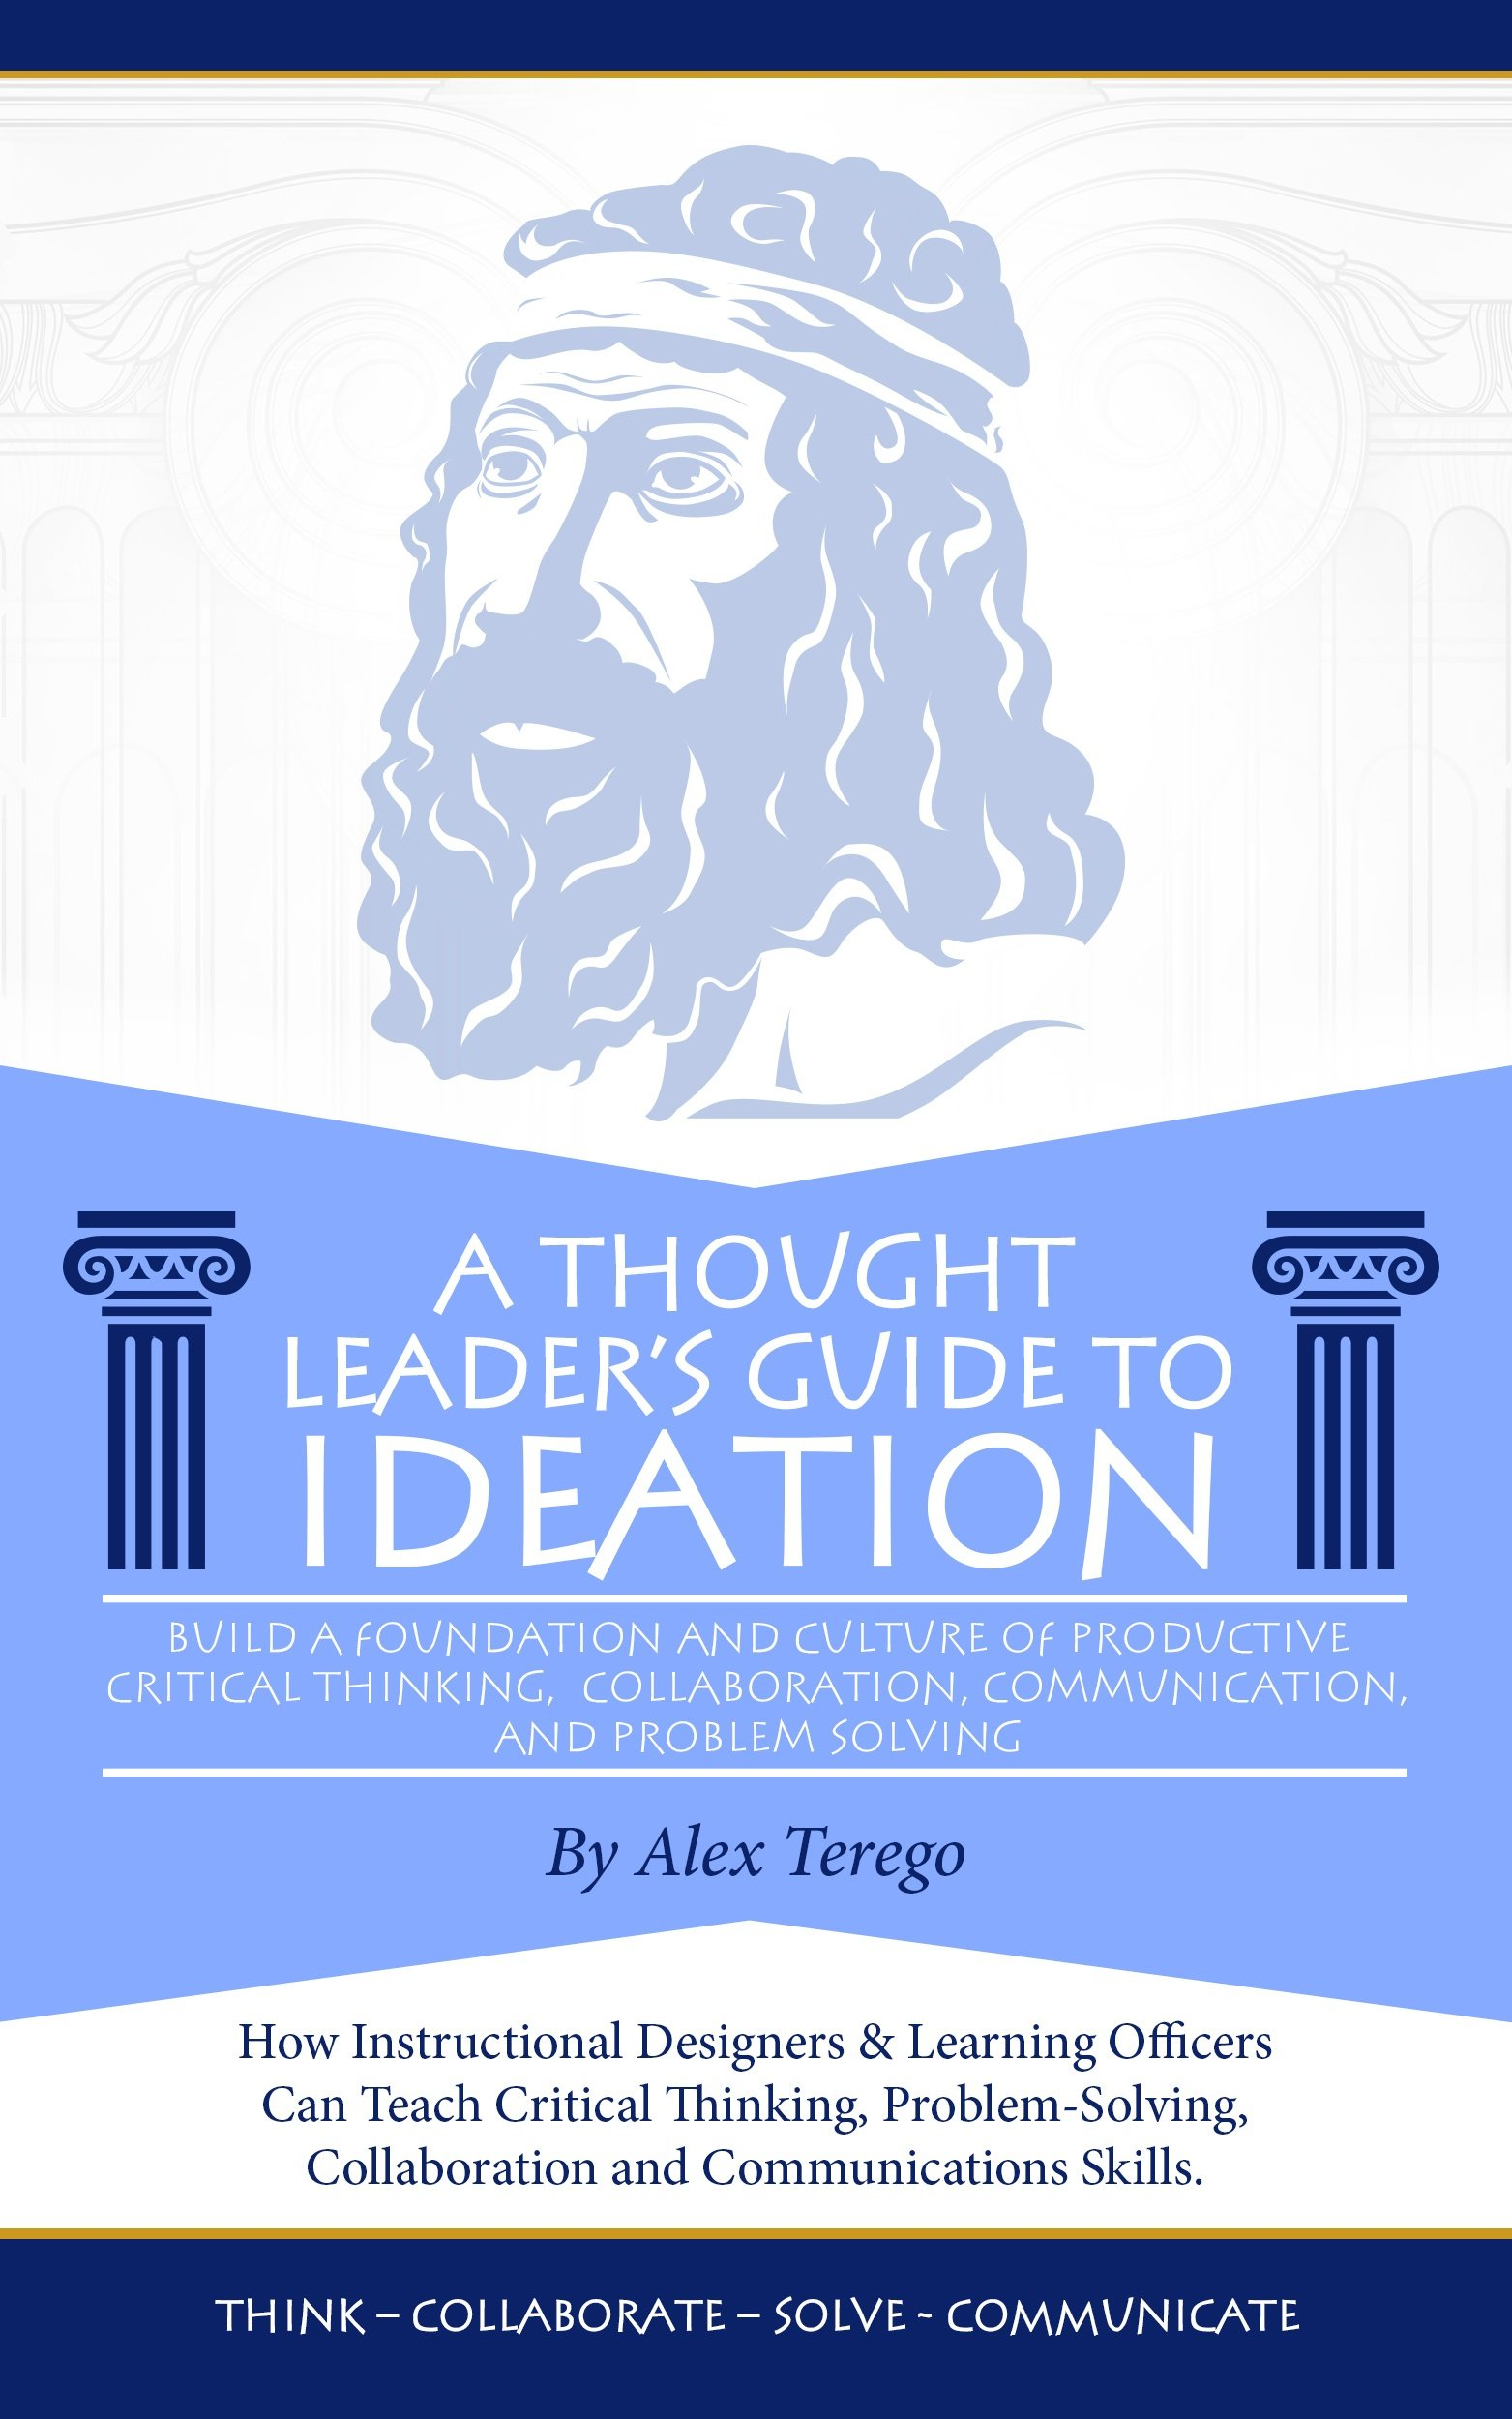 eBook Release: A Thought Leader's Guide to Ideation: Build a Foundation and Culture of Productive Critical-Thinking, Collaboration, Communication, and Problem-Solving